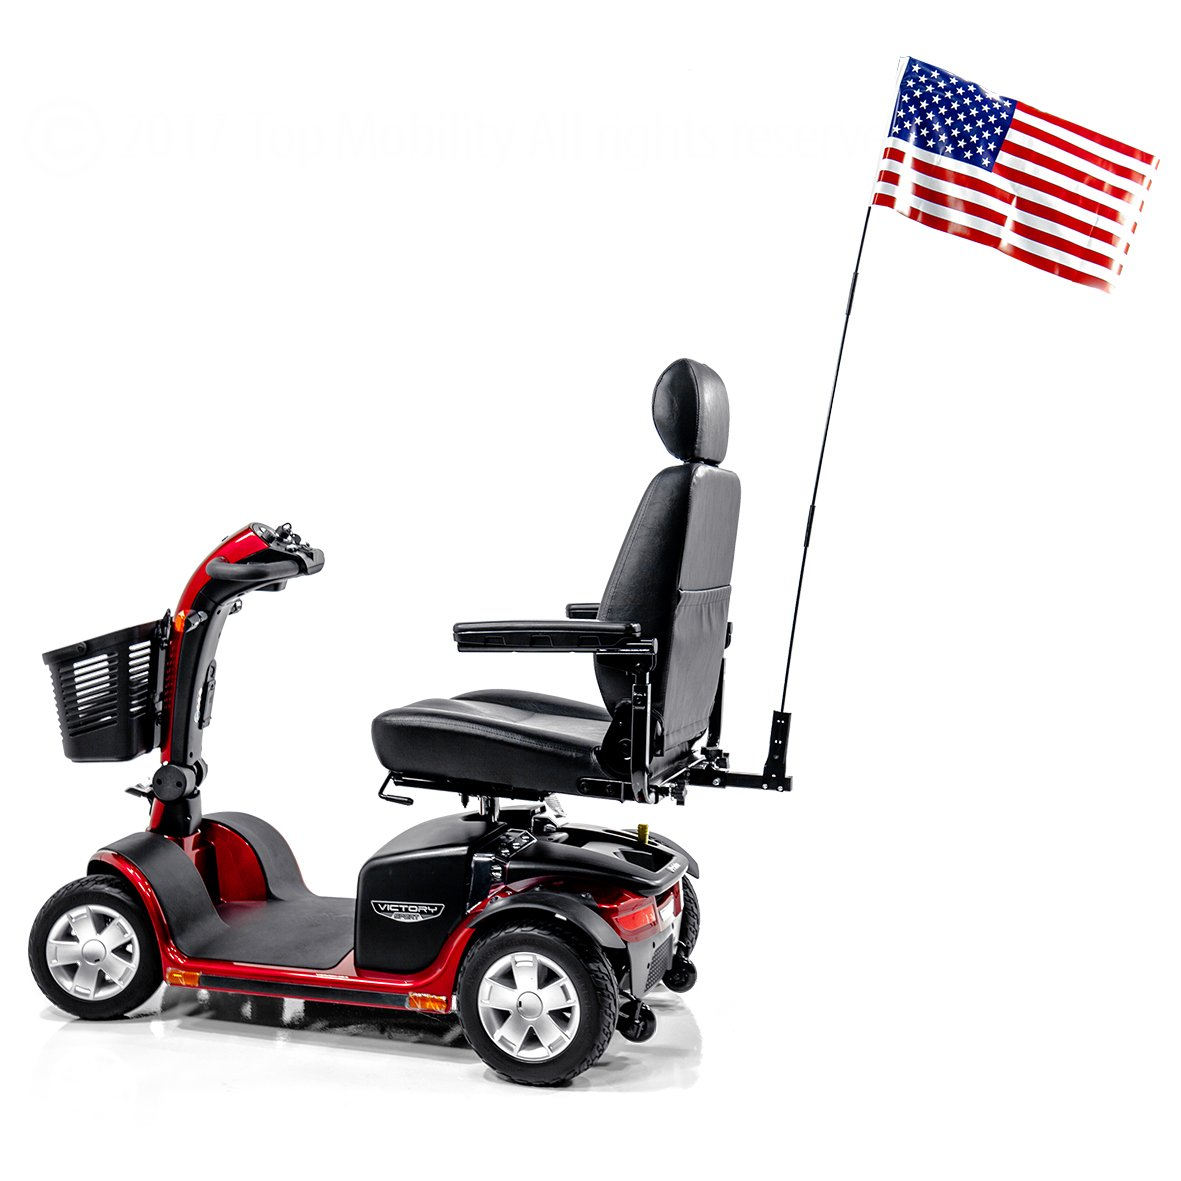 Scooter Patriotic Safety Flag Assembly for Most Pride, Golden, Challenger Mobility Scooter